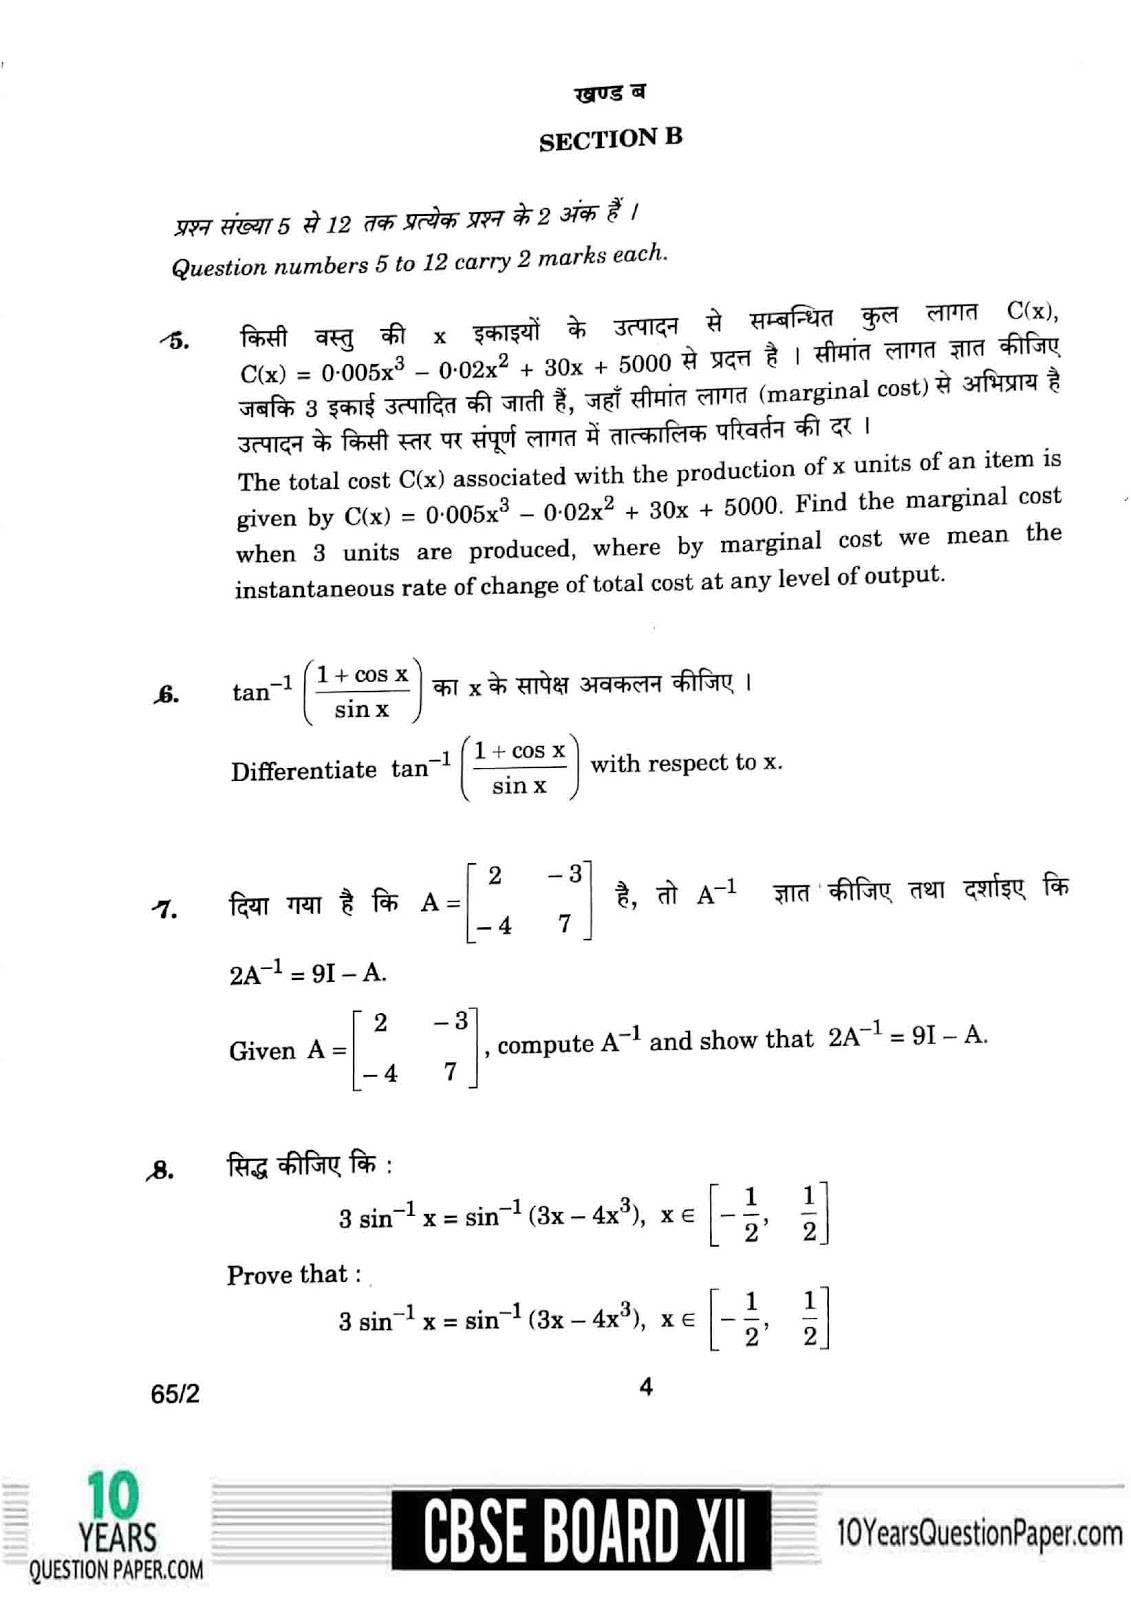 CBSE class 12 Maths 2018 question paper page-03